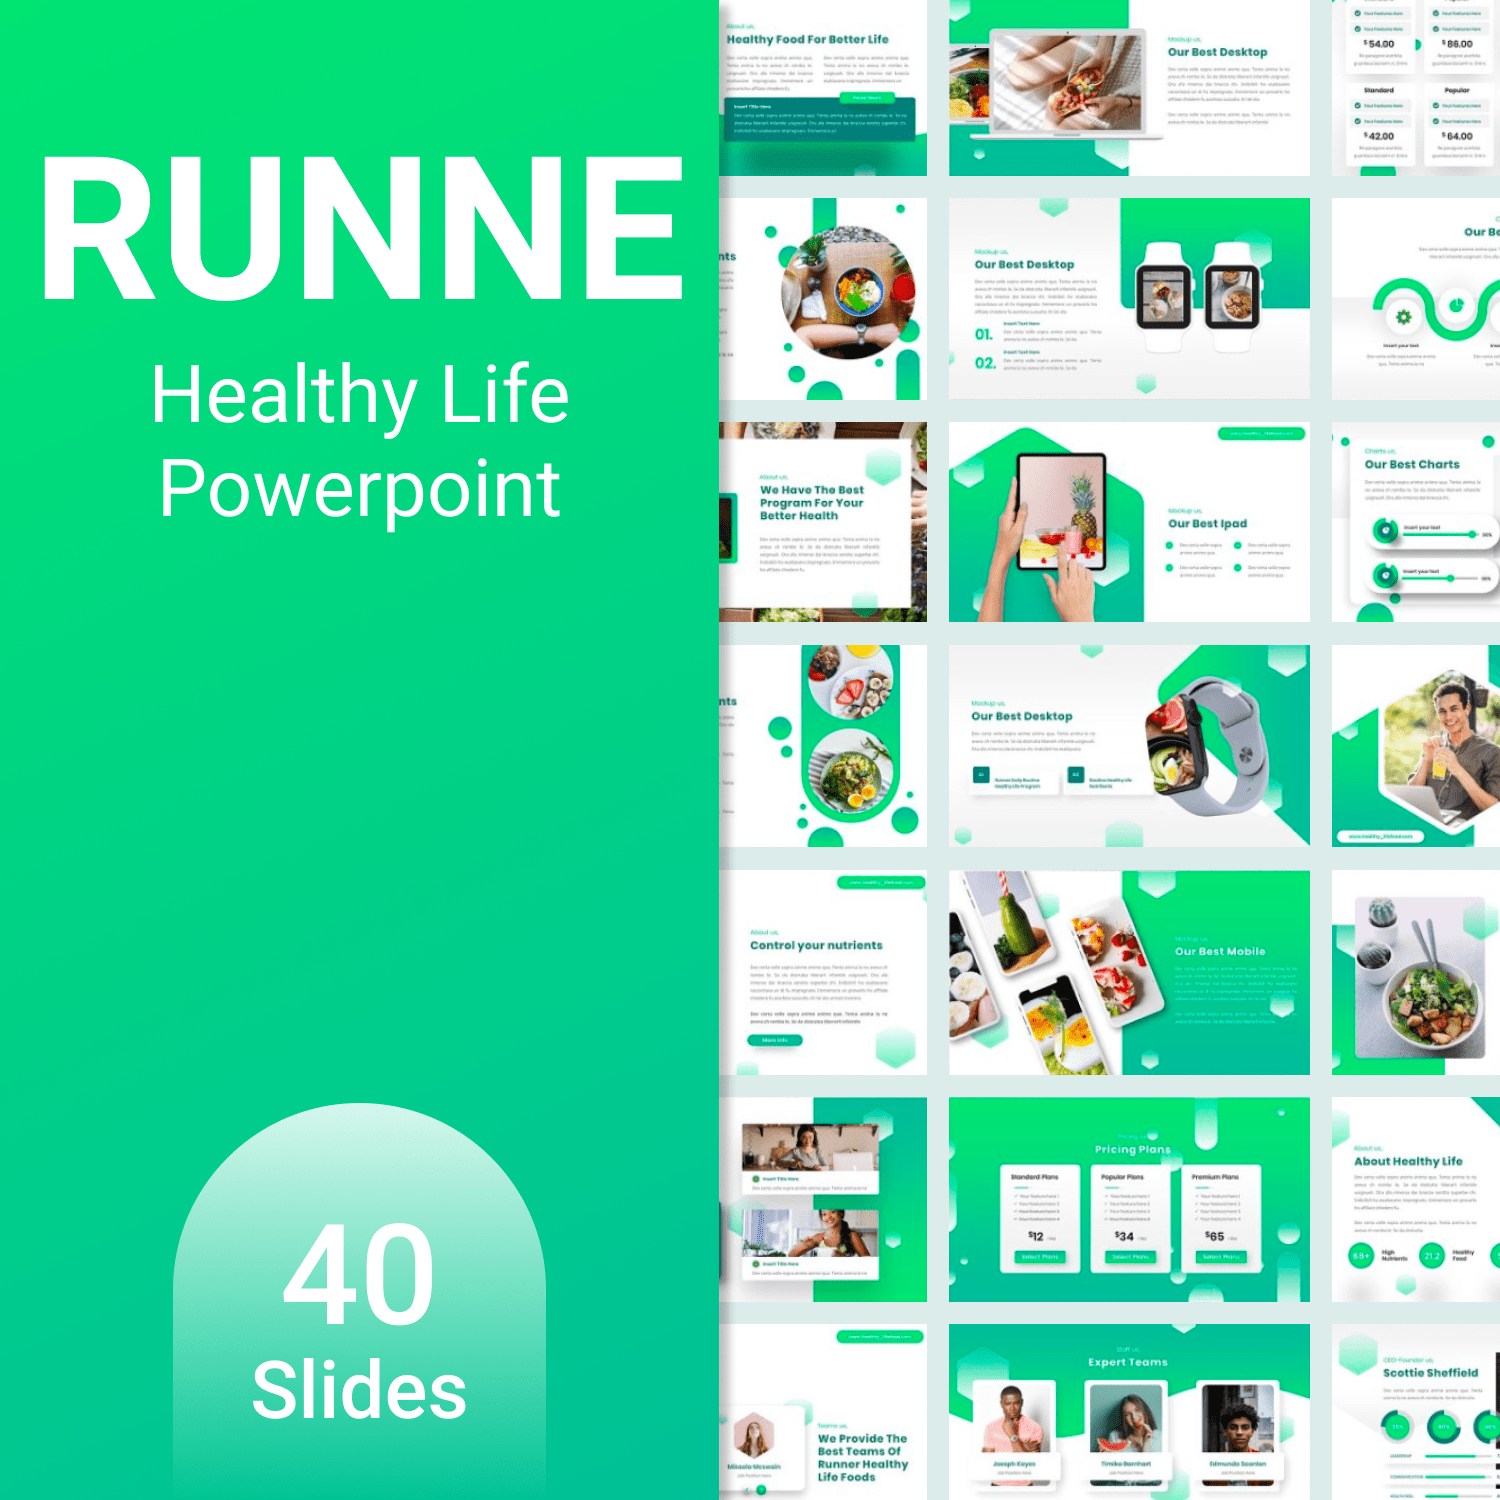 Runne - Healthy Life Powerpoint main cover.